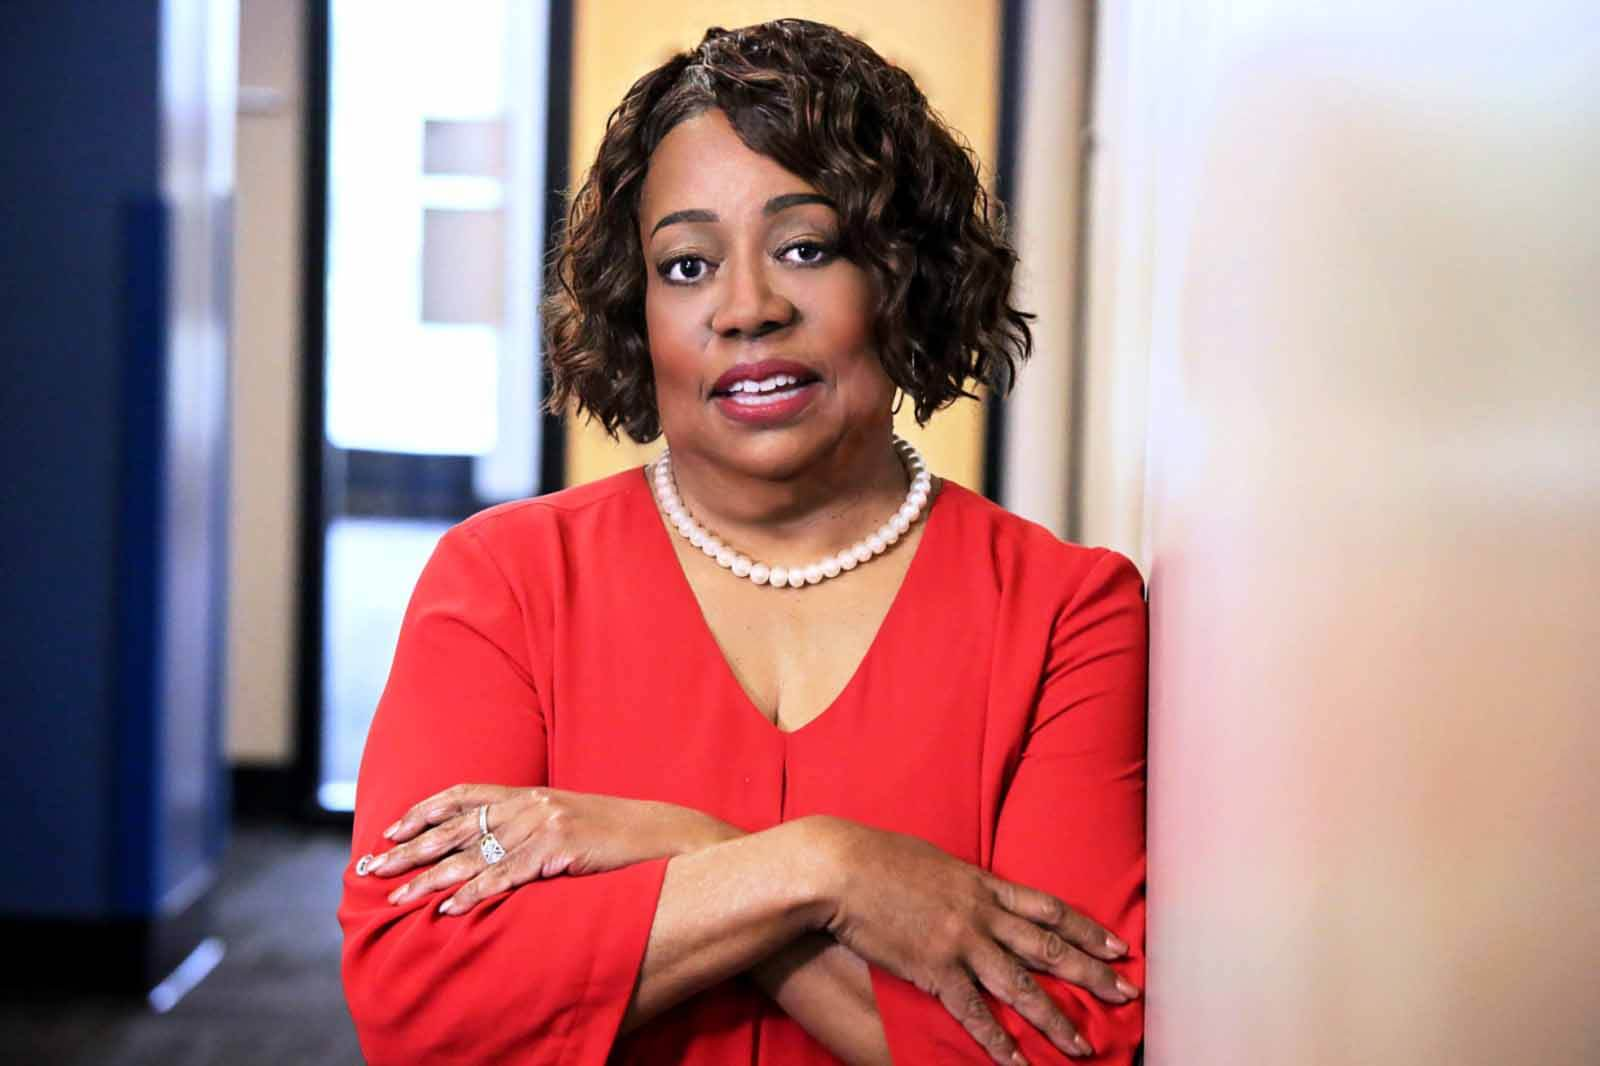 Meet Samuetta Nesbitt of the United Way of Central Alabama